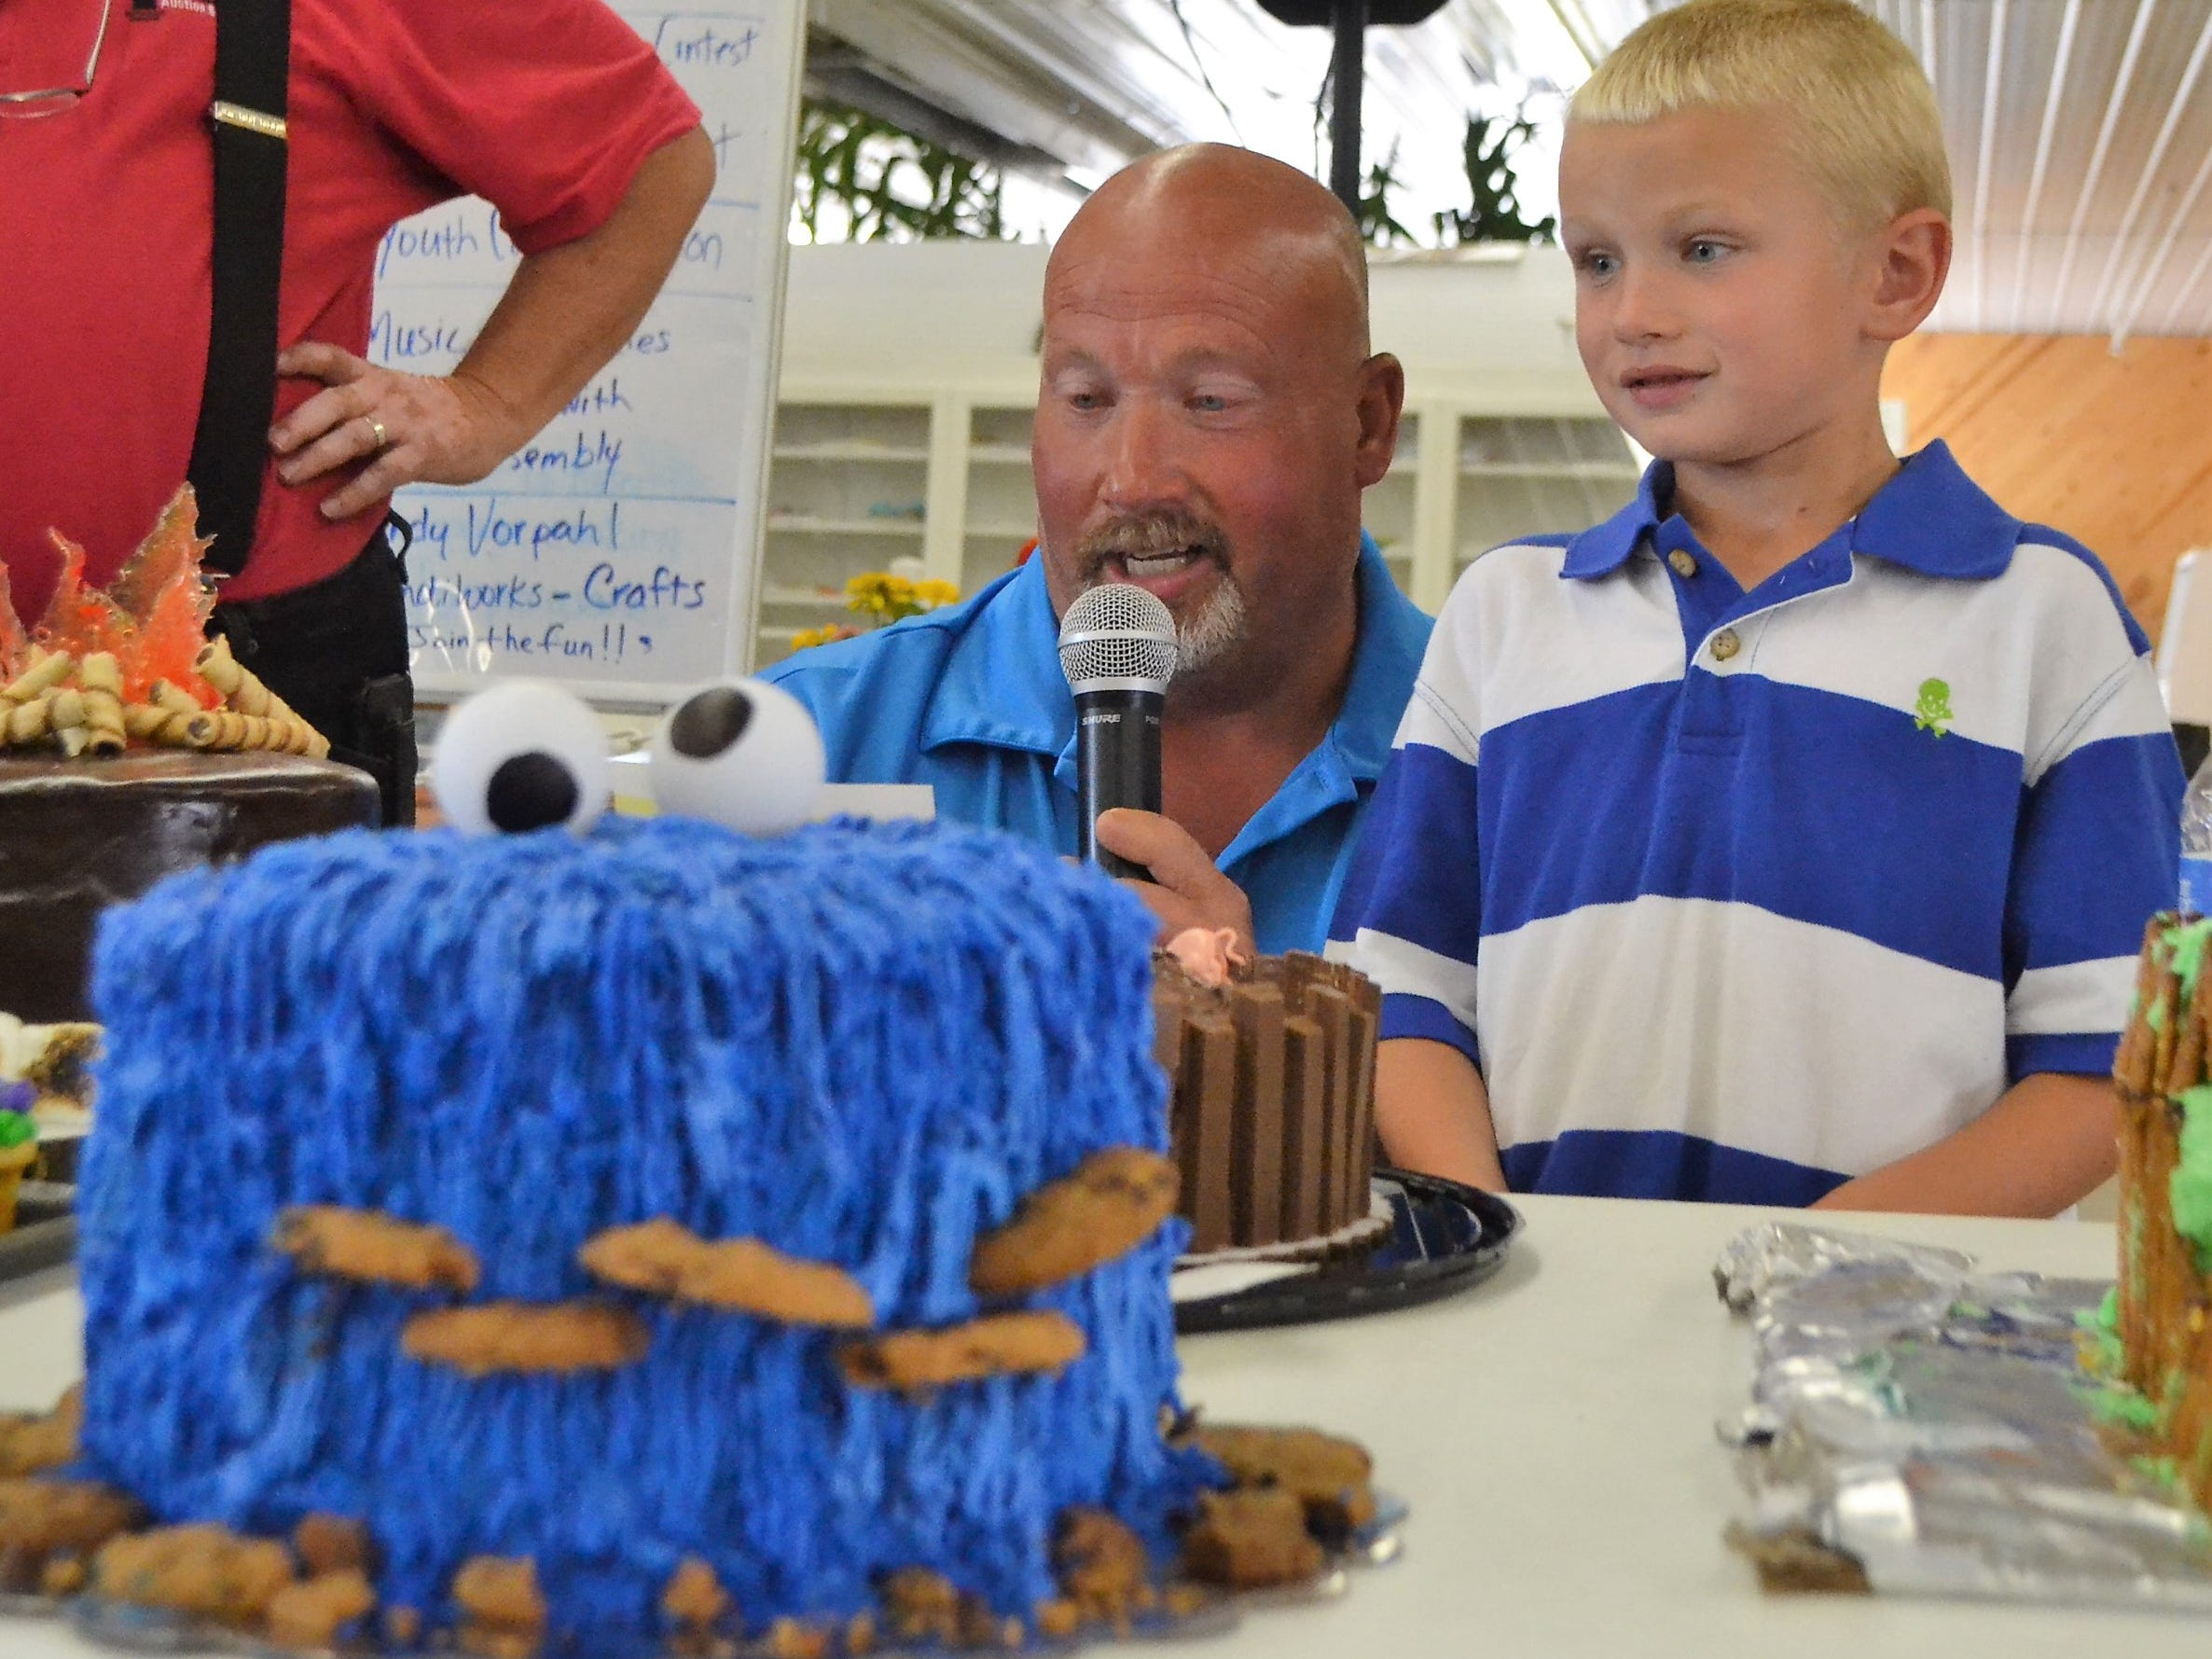 Chris Engebretson introduces his son Connor's cake at the Decorated Cake Auction at the Oconto County Fair on Saturday, Aug. 18. The Cookie Monster theme cake fetched $1,400, purchased by a group of five people.  Half of the money will go to the draft horse pull held Saturdays at the fair, which Connor enjoys, with the rest going for future fair projects.